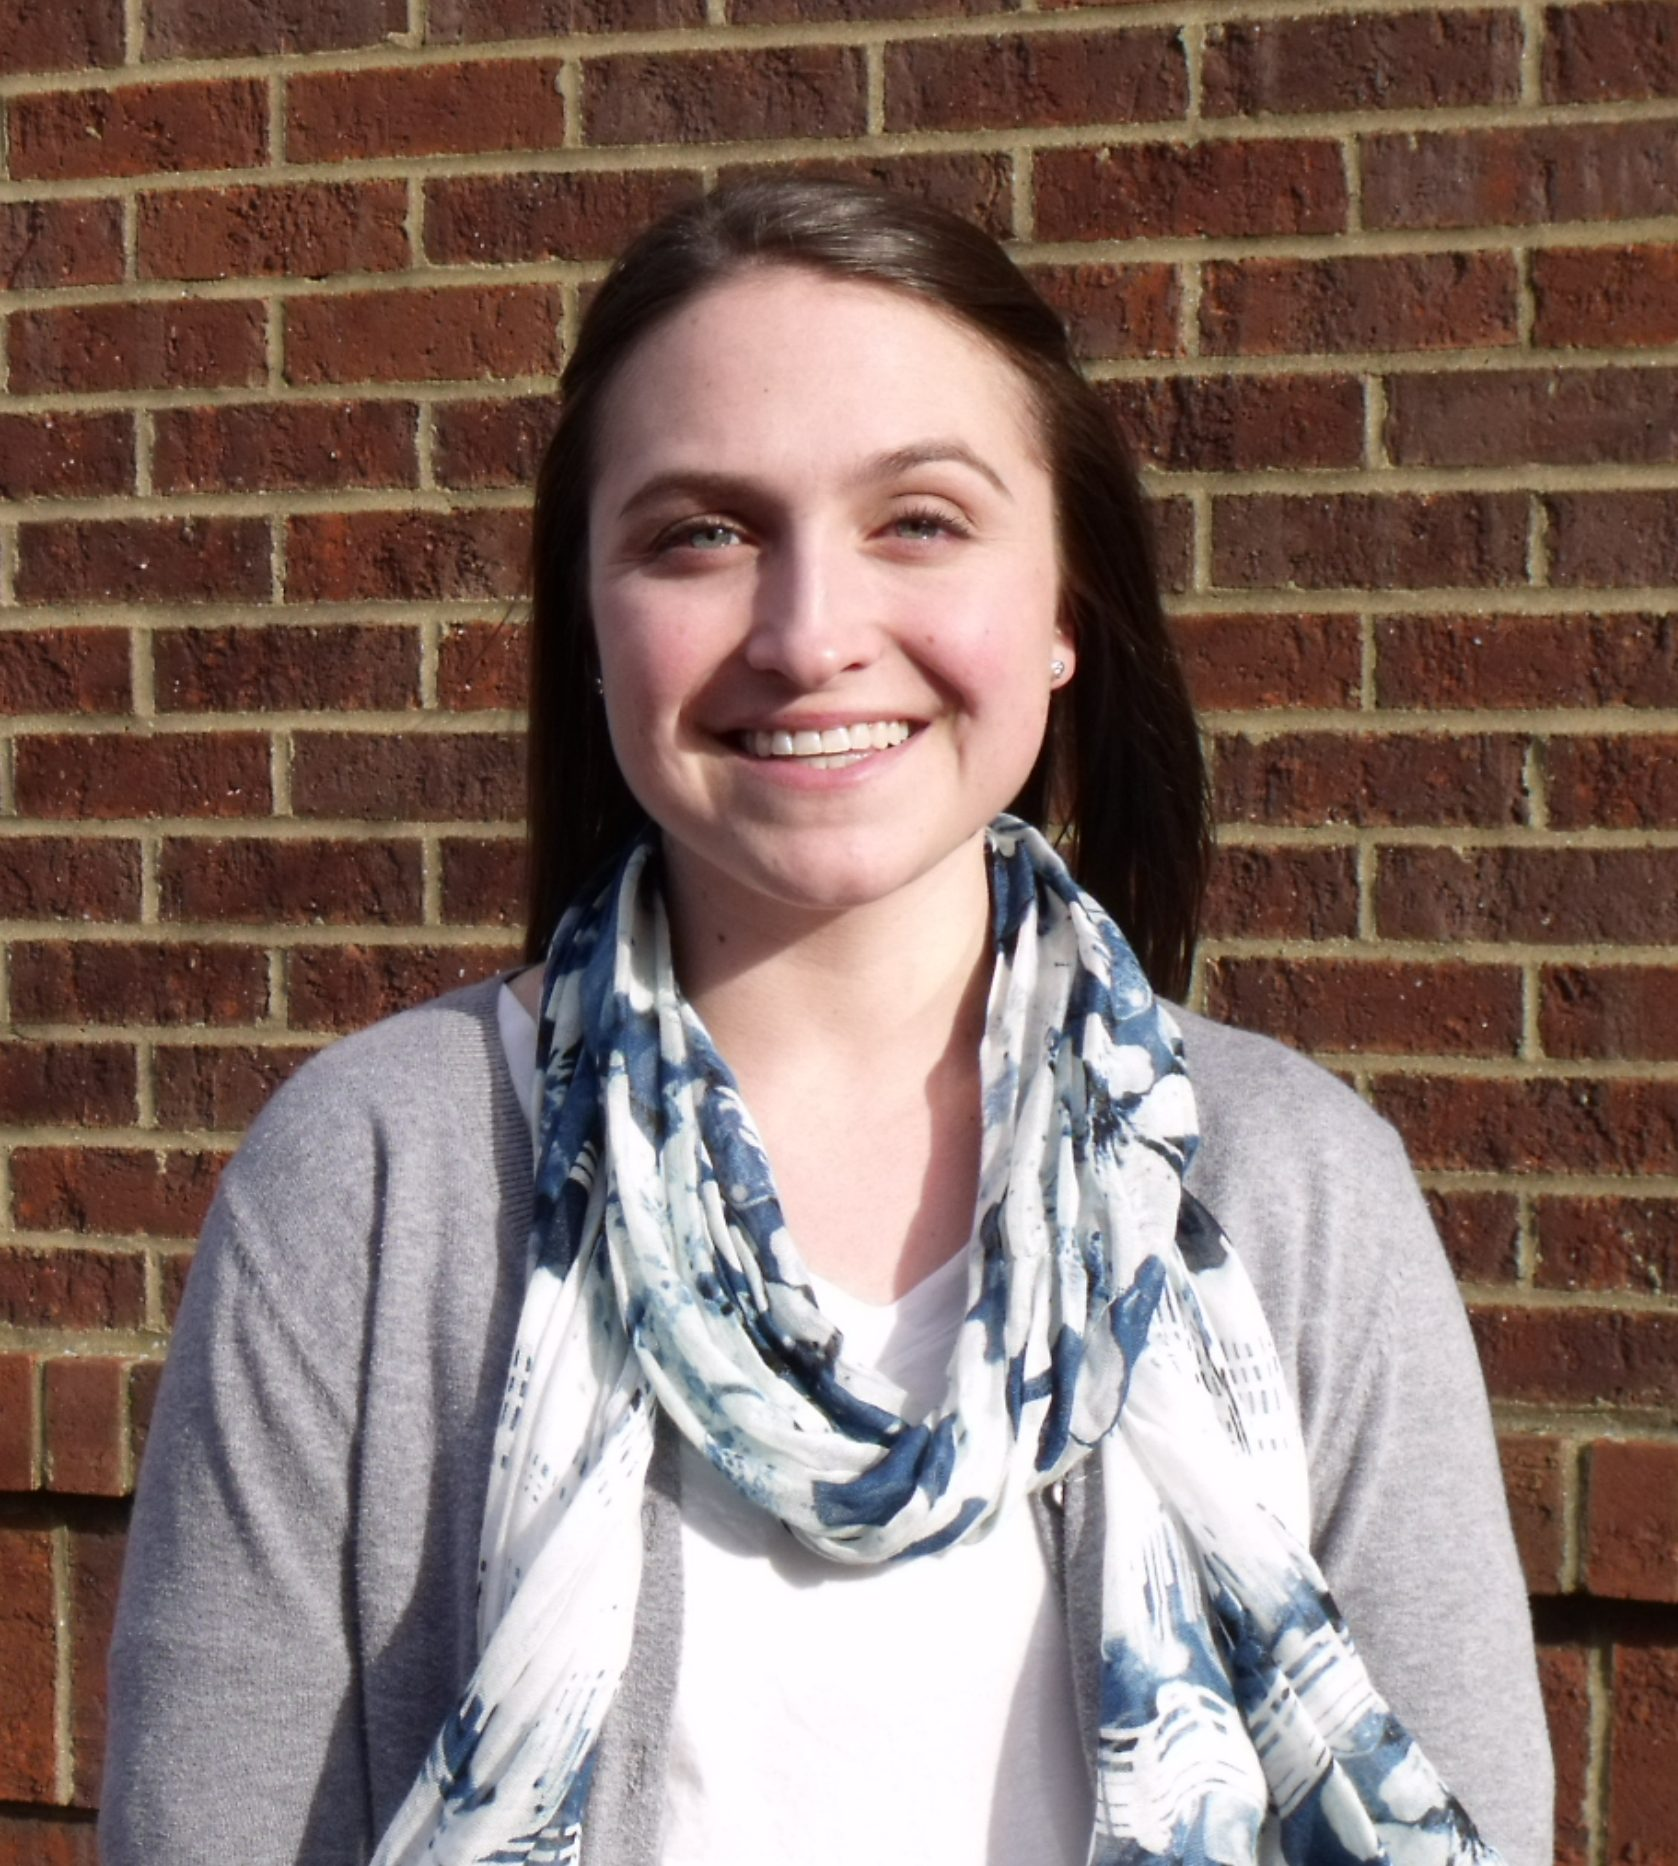 Megan Burtraw, M.A., CF-SLP